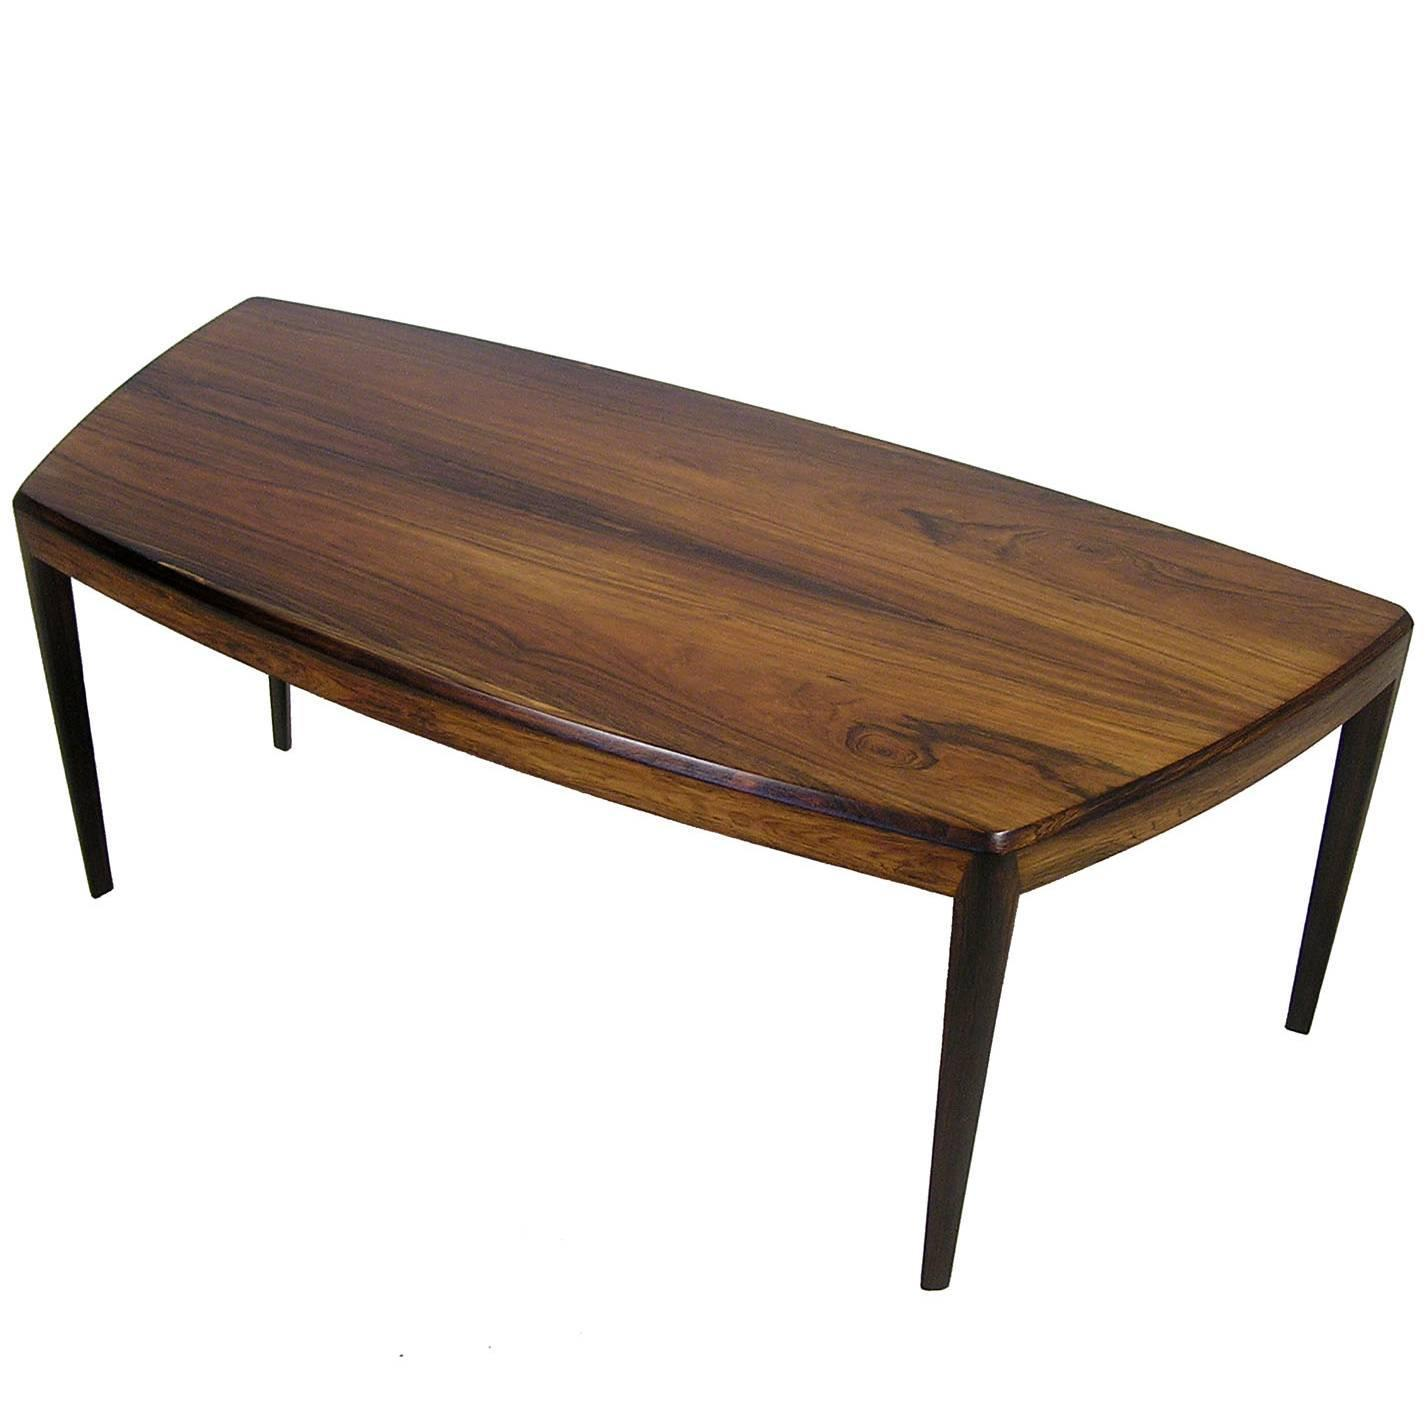 1960s Brazilian Rosewood Coffee Table By Kai Kristiansen, Denmark For Sale  At 1stdibs